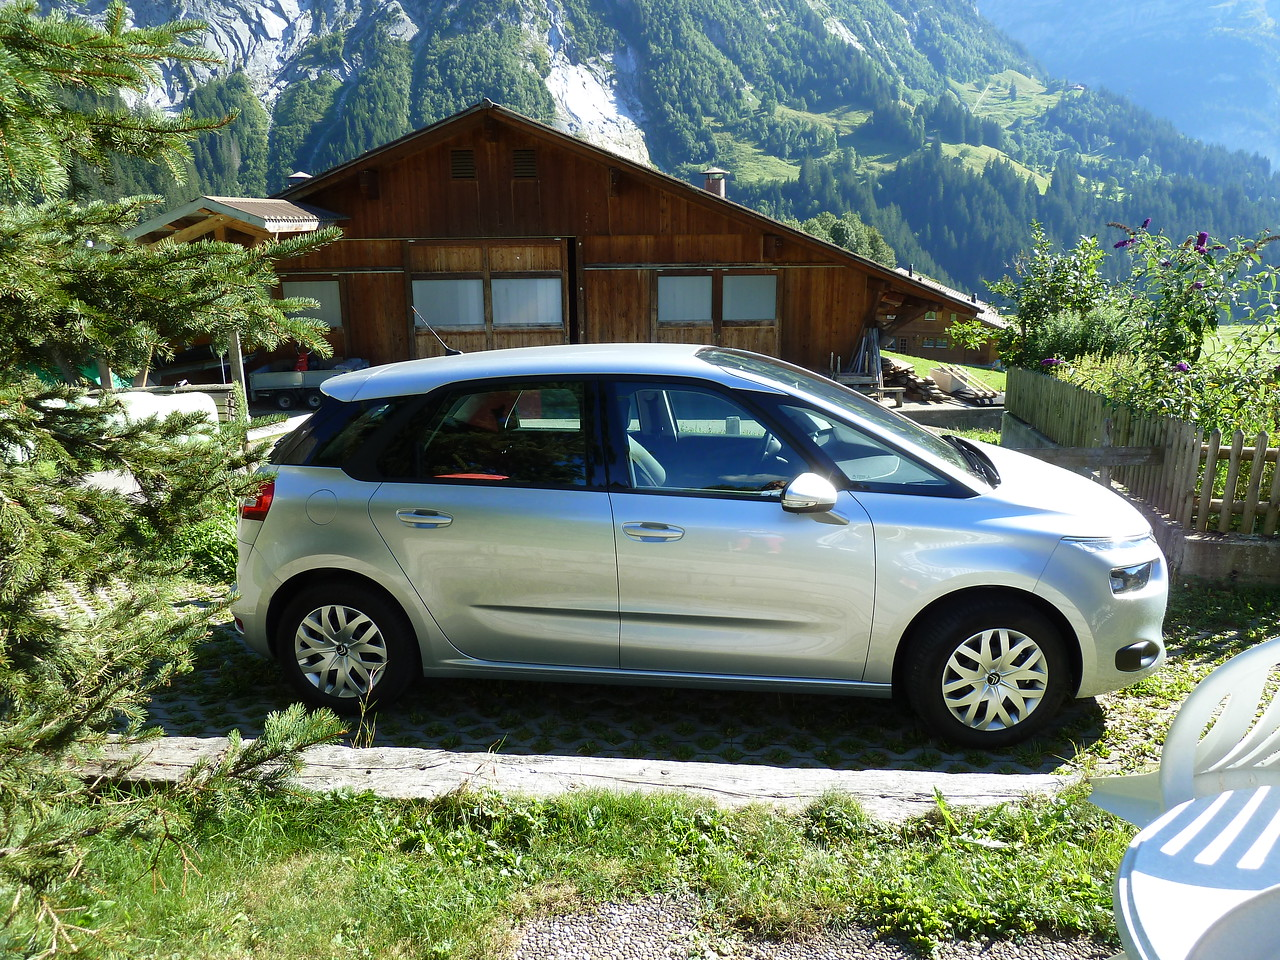 Our wonderful Citroen Picasso which would carry us 10,000 km through Europe.